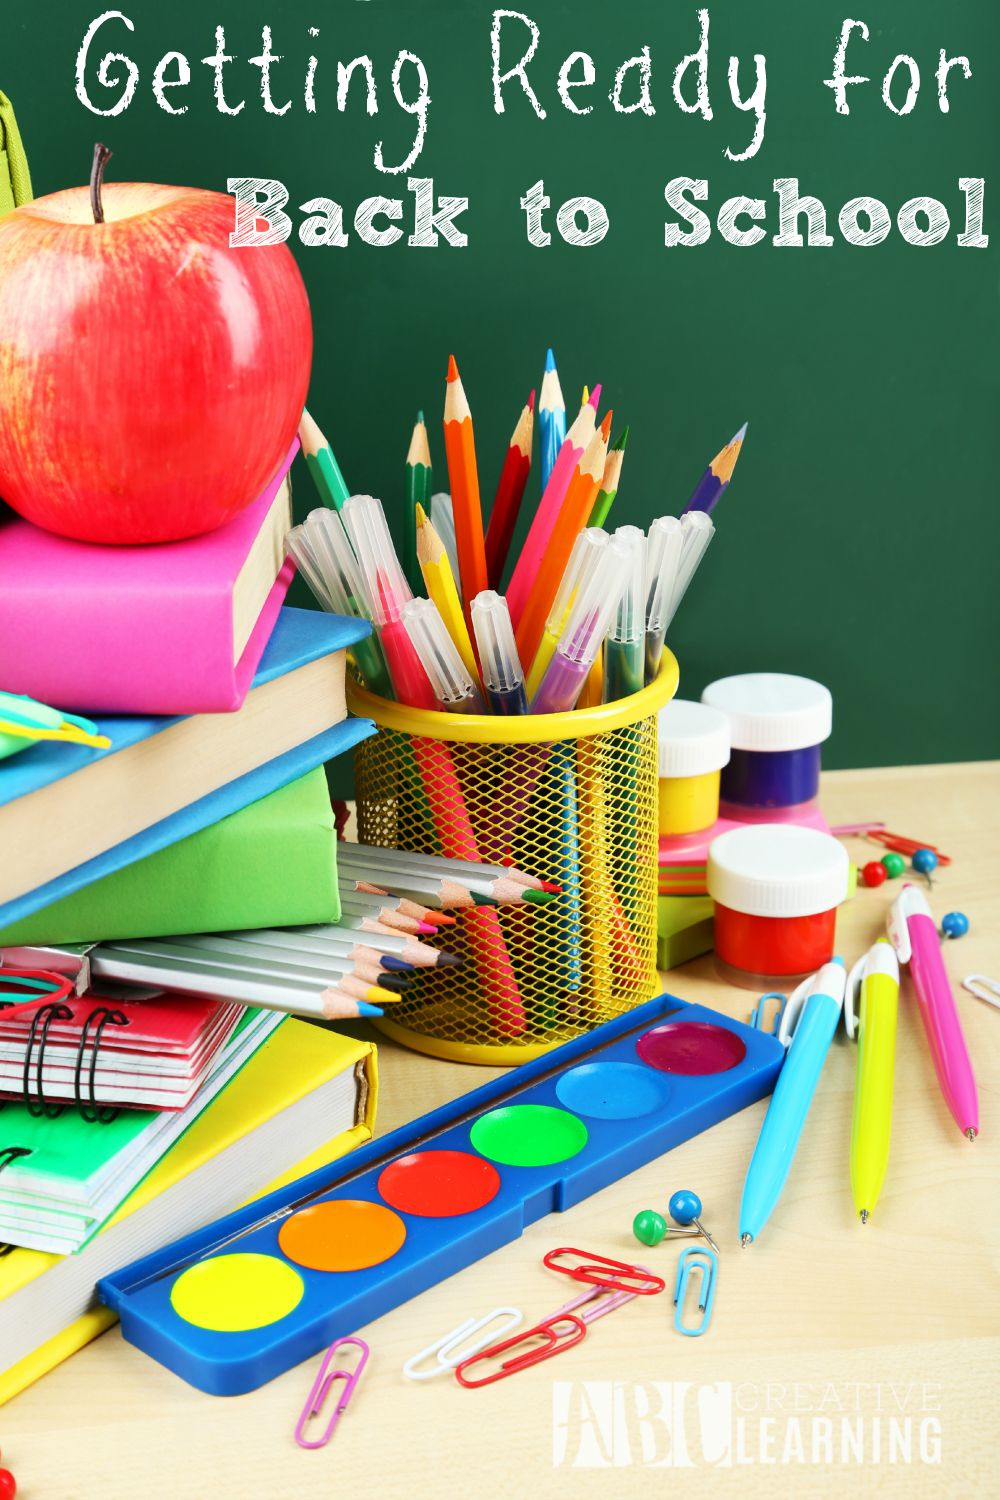 Getting Ready for Back to School can be easy if you and your kids are prepared.